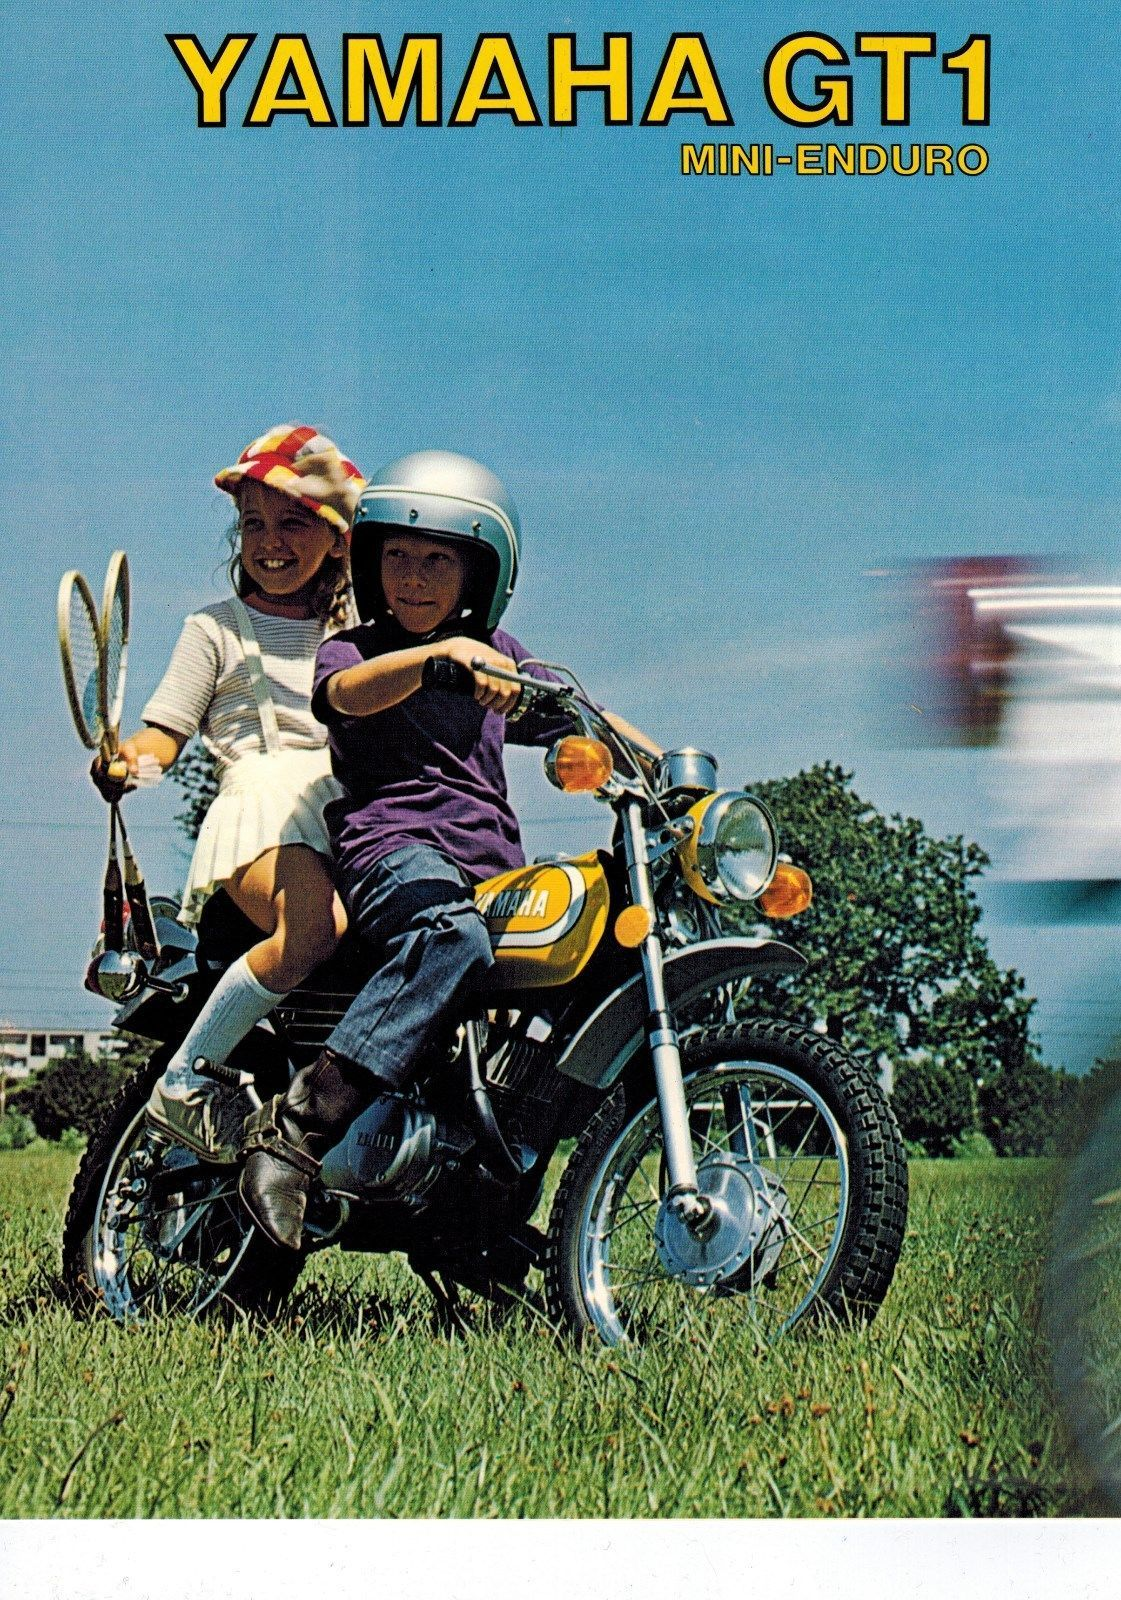 details about 1973 yamaha gt1 80 mini enduro 4 pages. Black Bedroom Furniture Sets. Home Design Ideas